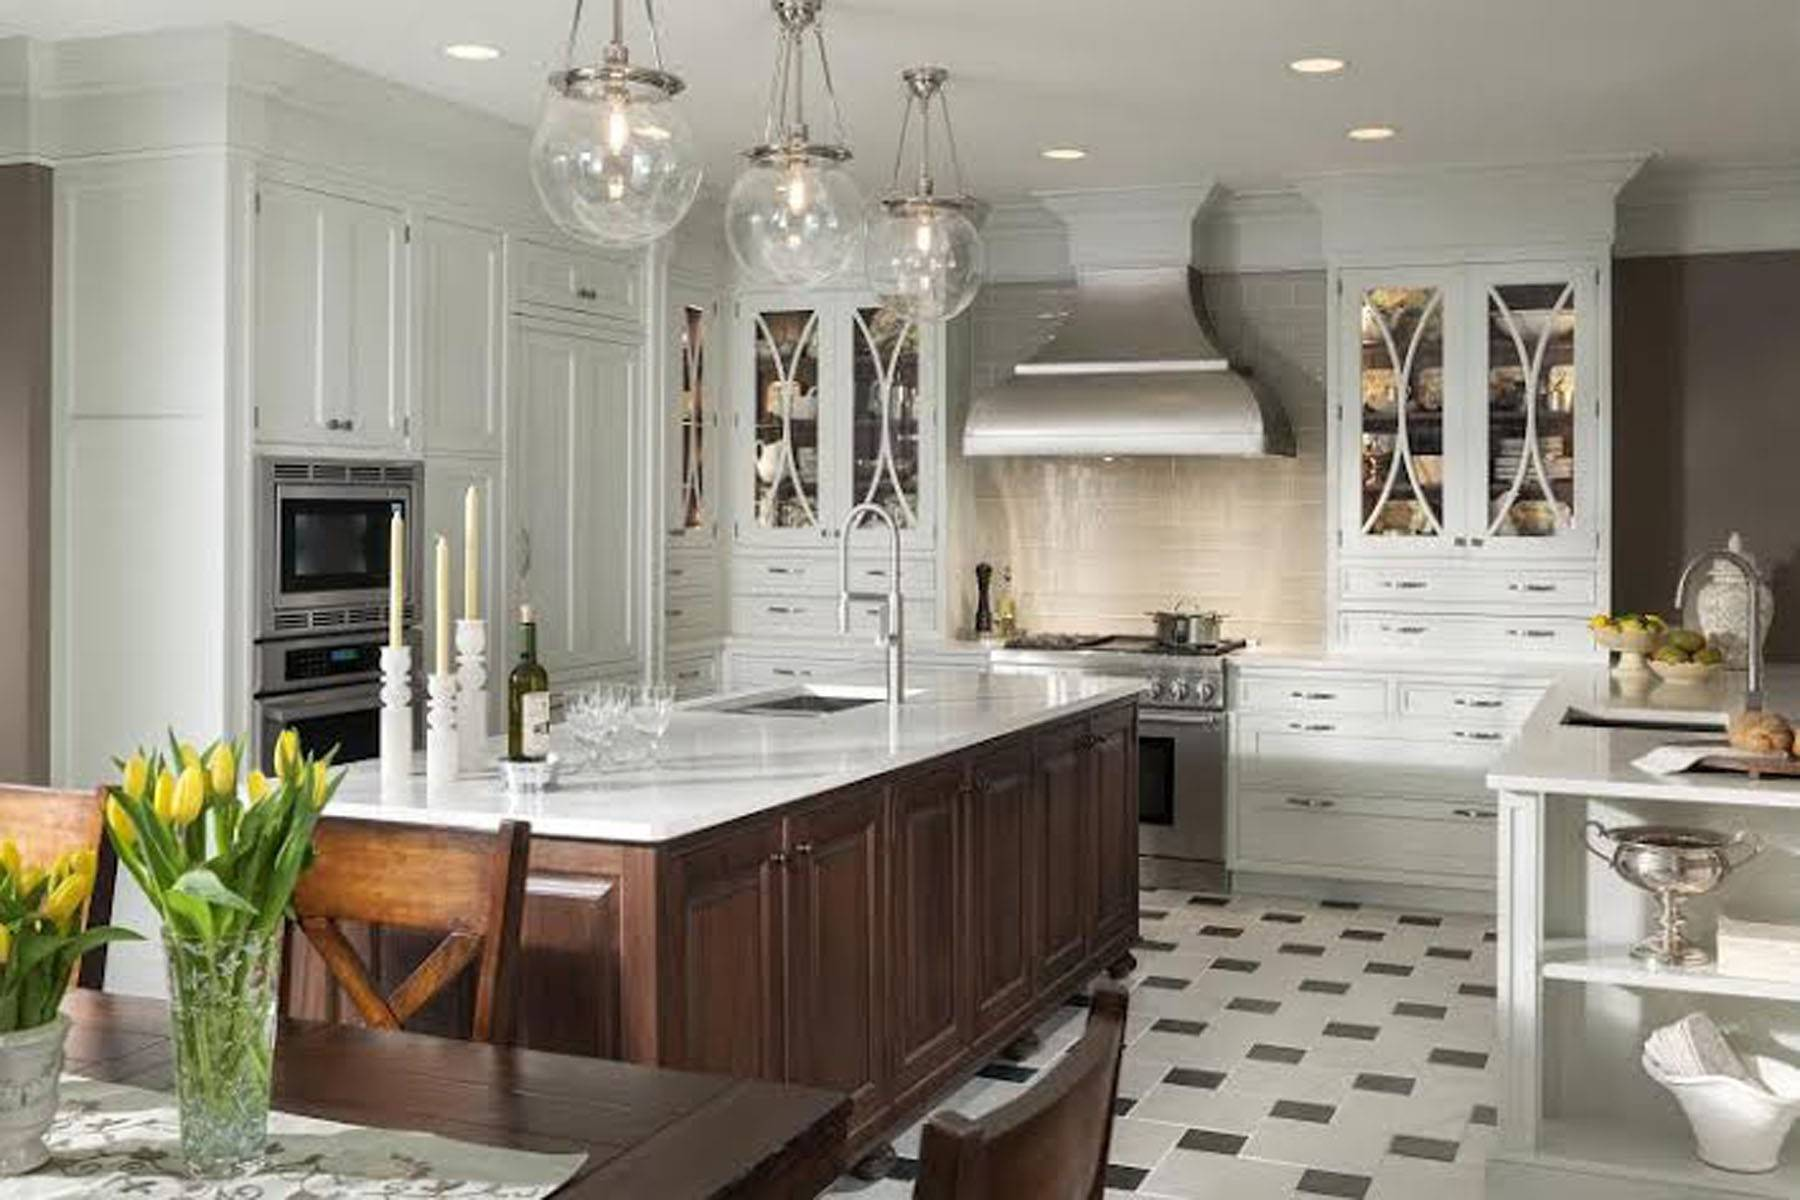 Make mine matchless: A mix of different woods and cabinet styles adds eye appeal to an elegant kitchen.